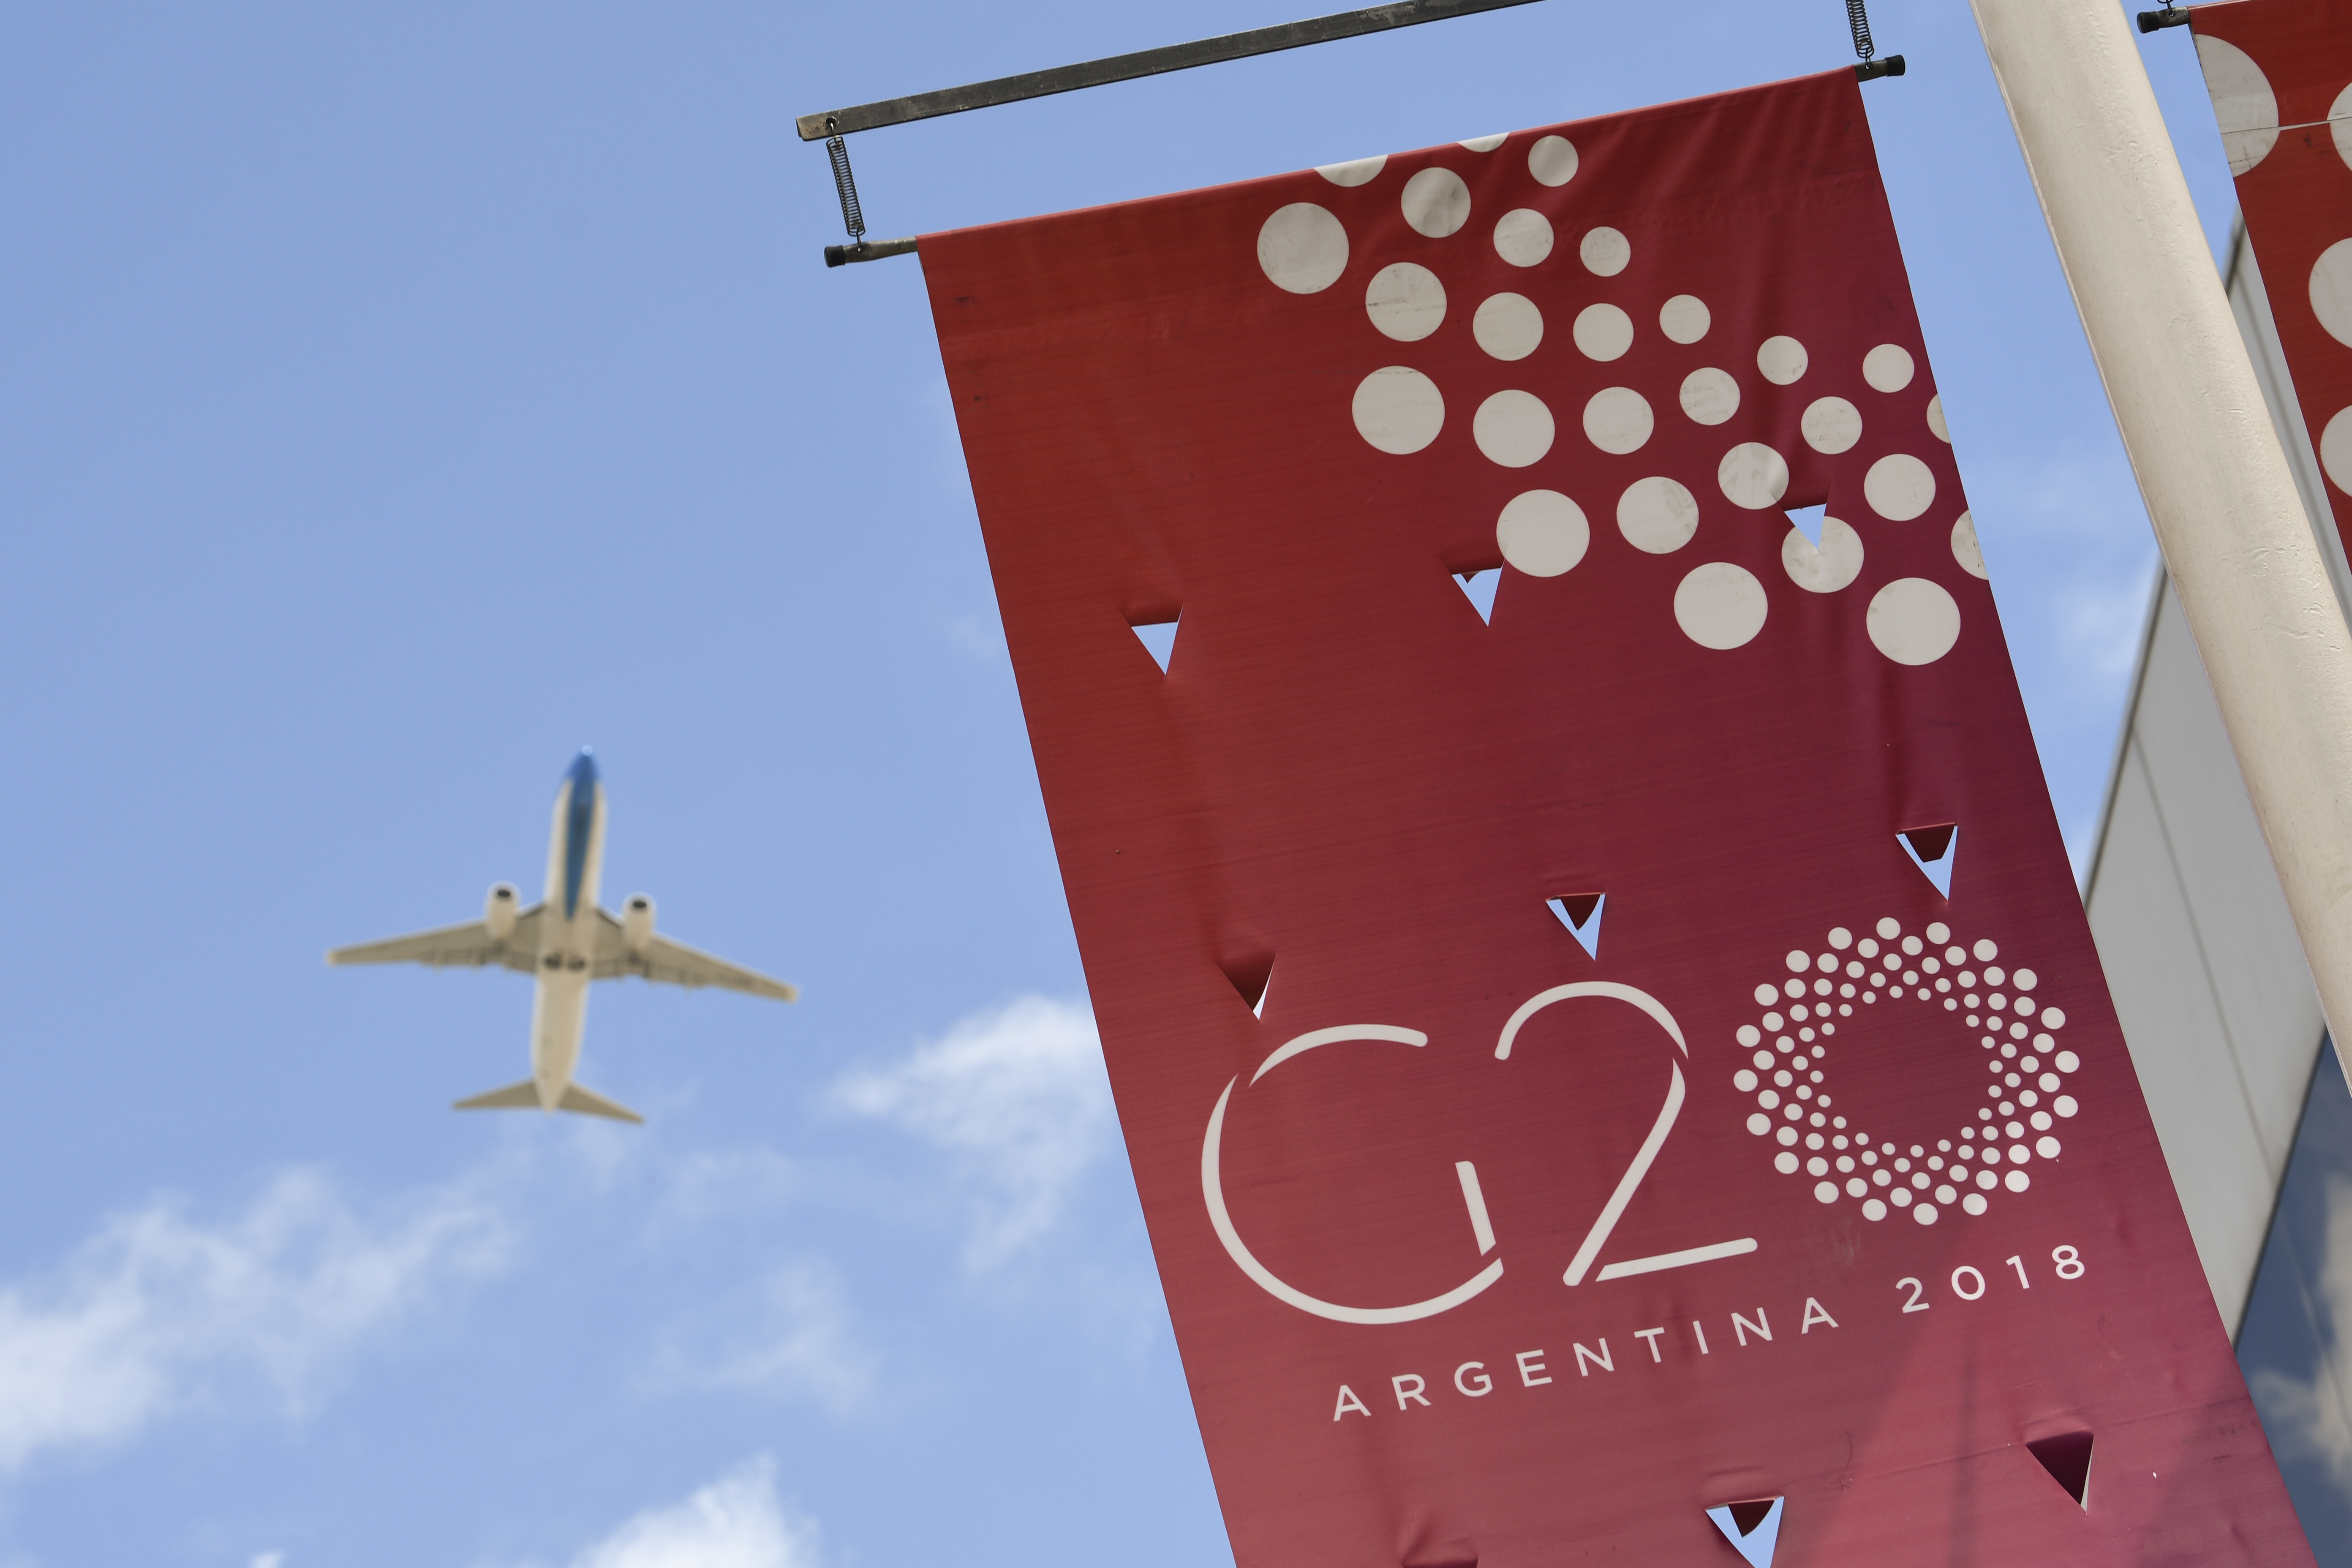 A plane flies over the G20 summit venue at the Costa Salguero Centre in Buenos Aires, Argentina